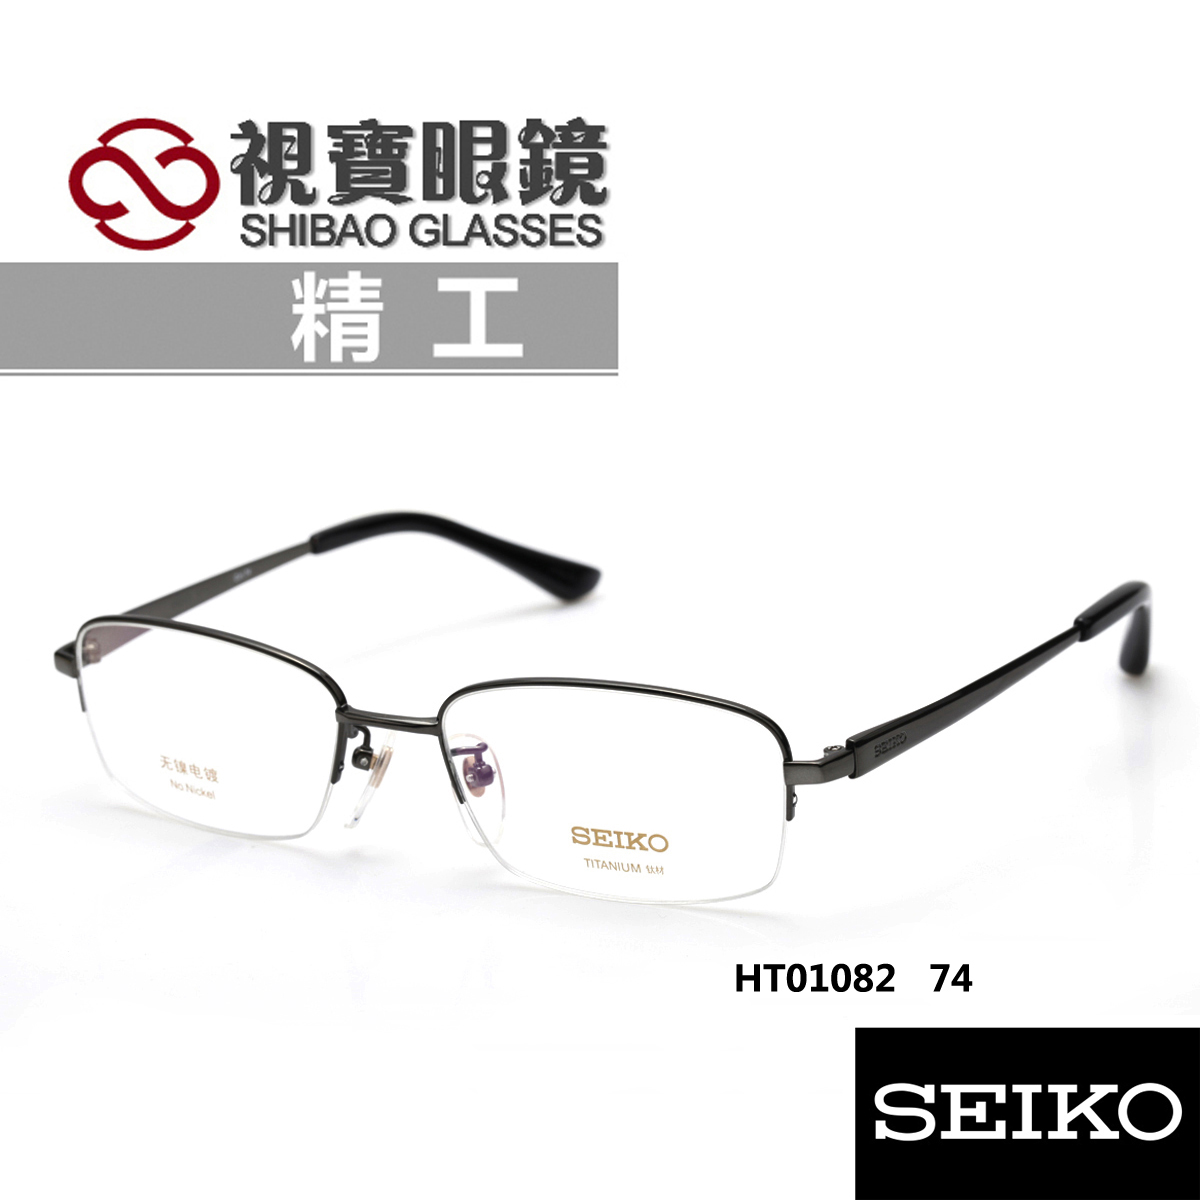 0e3e6b6e15 Buy Seiko seiko titanium frames full frame glasses myopia business men  ultralight glasses H01119 in Cheap Price on Alibaba.com